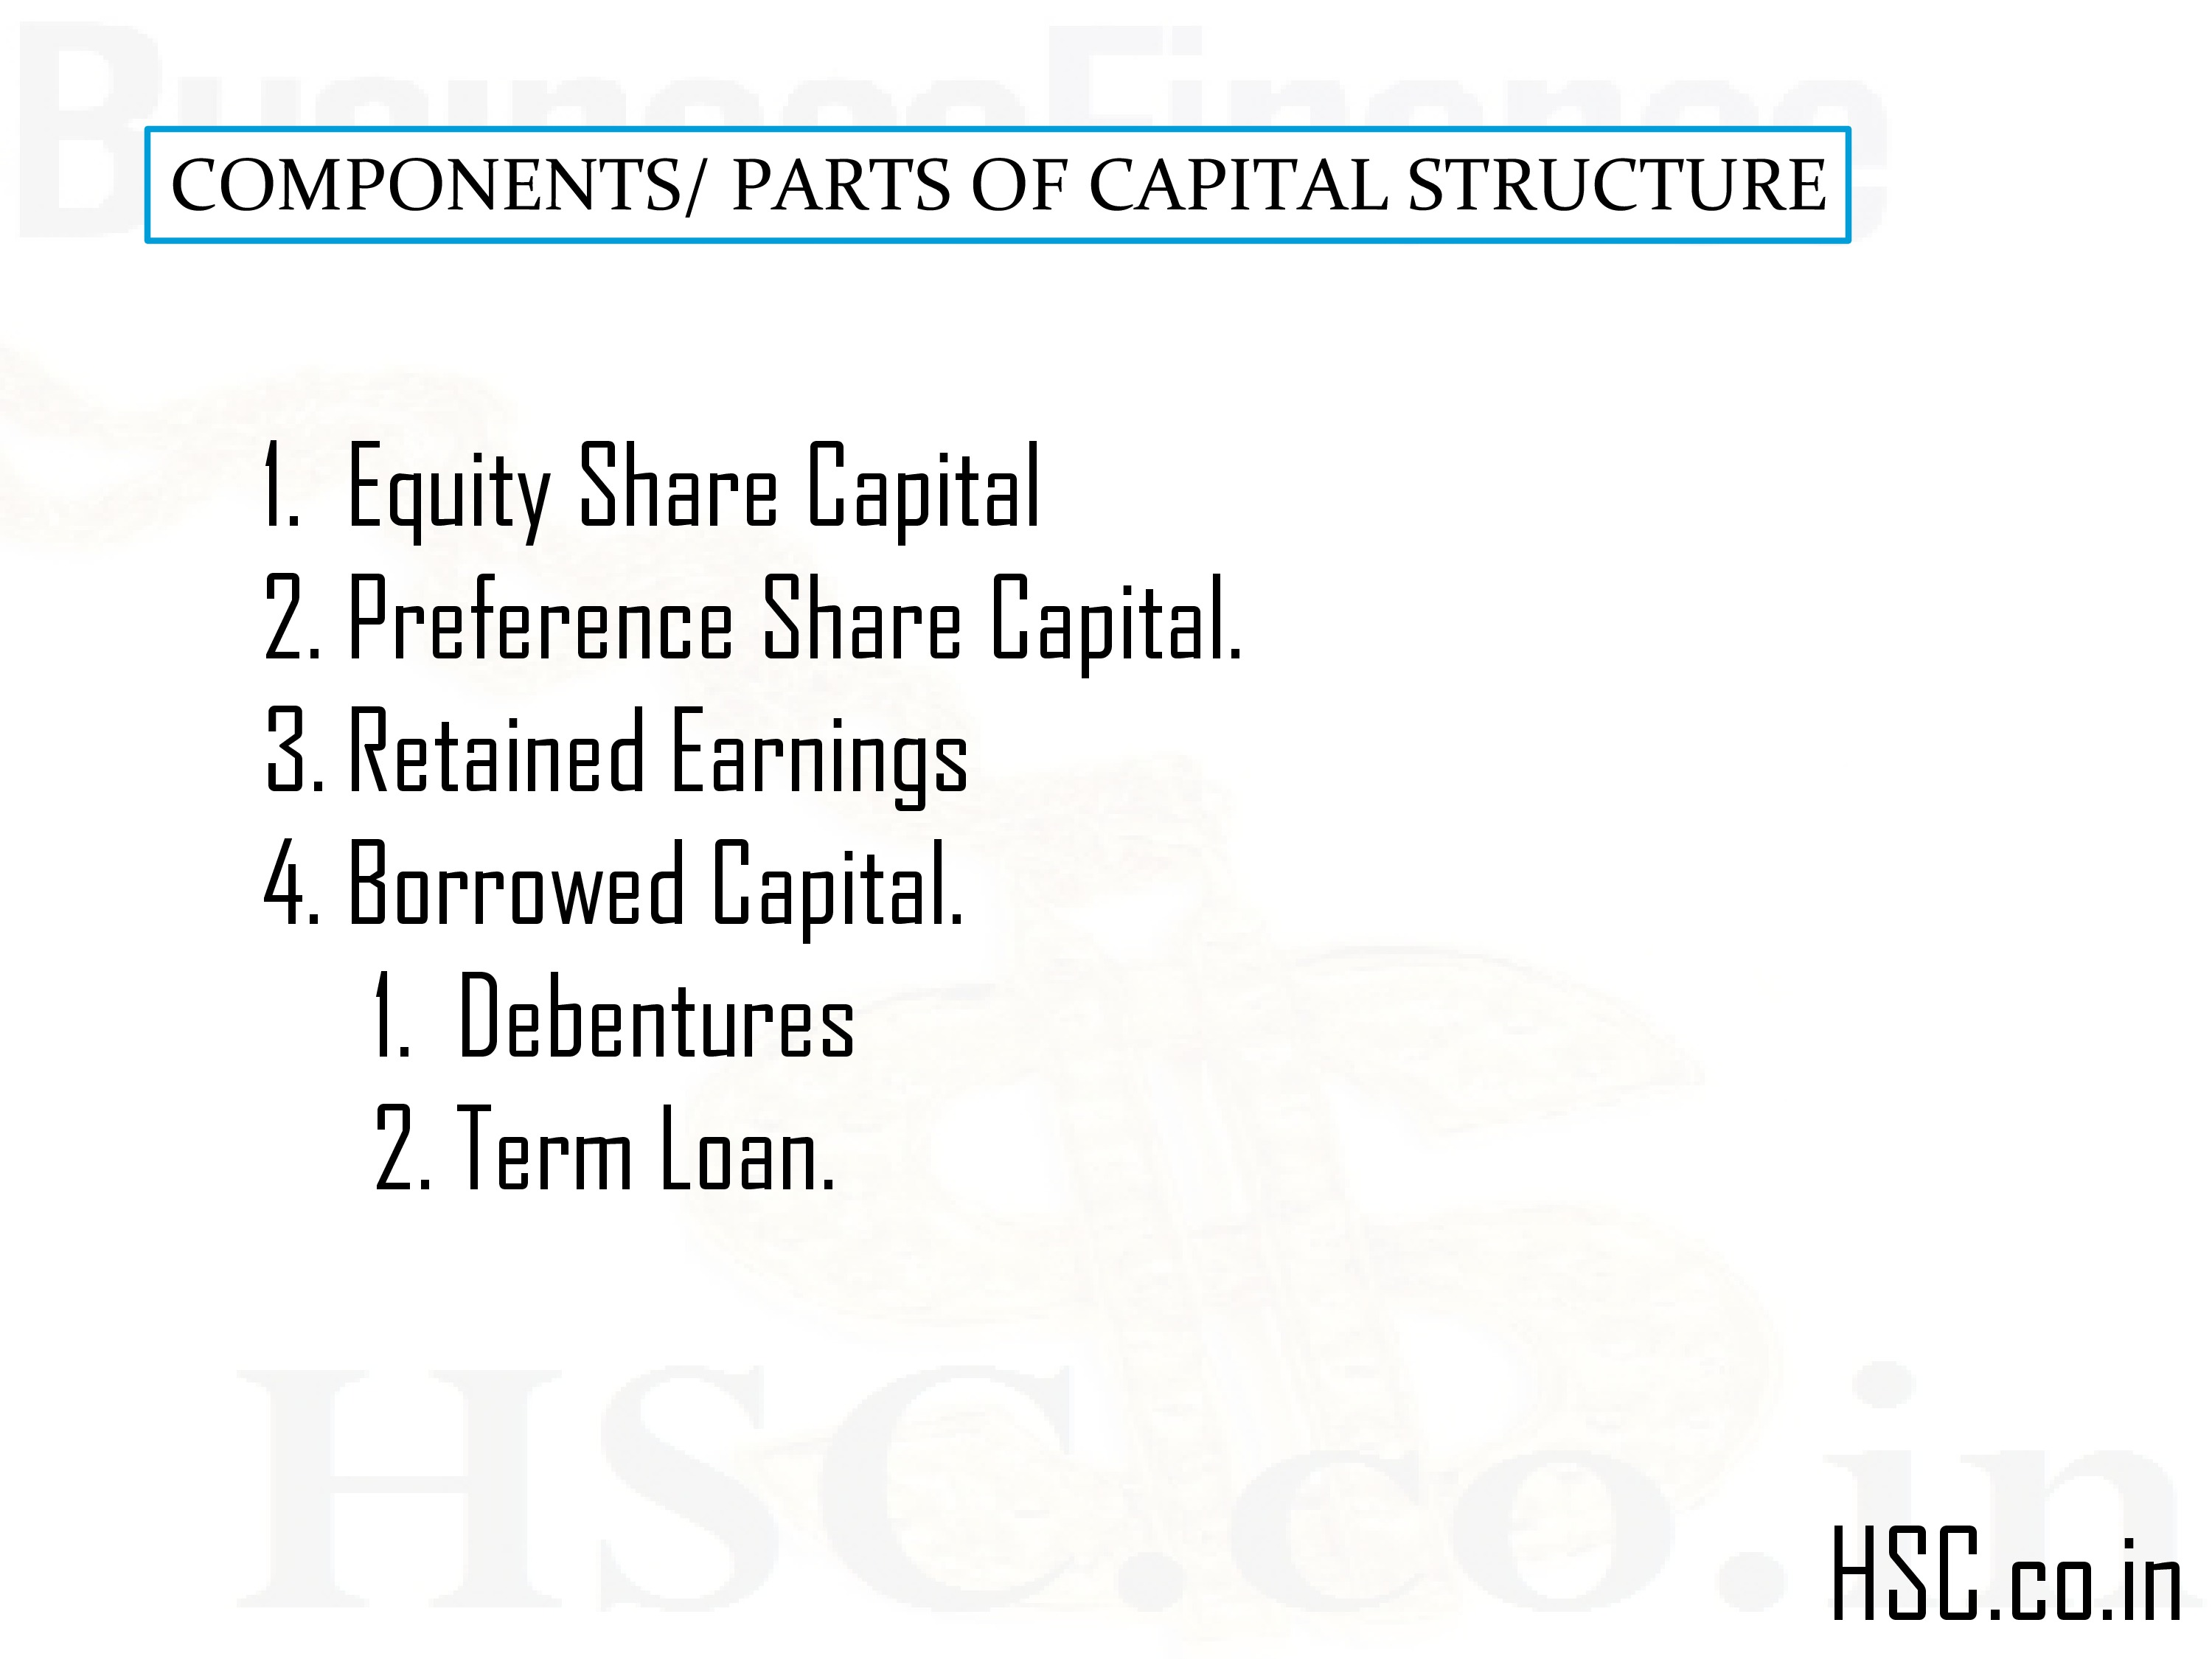 COMPONENTS/ PARTS OF CAPITAL STRUCTURE